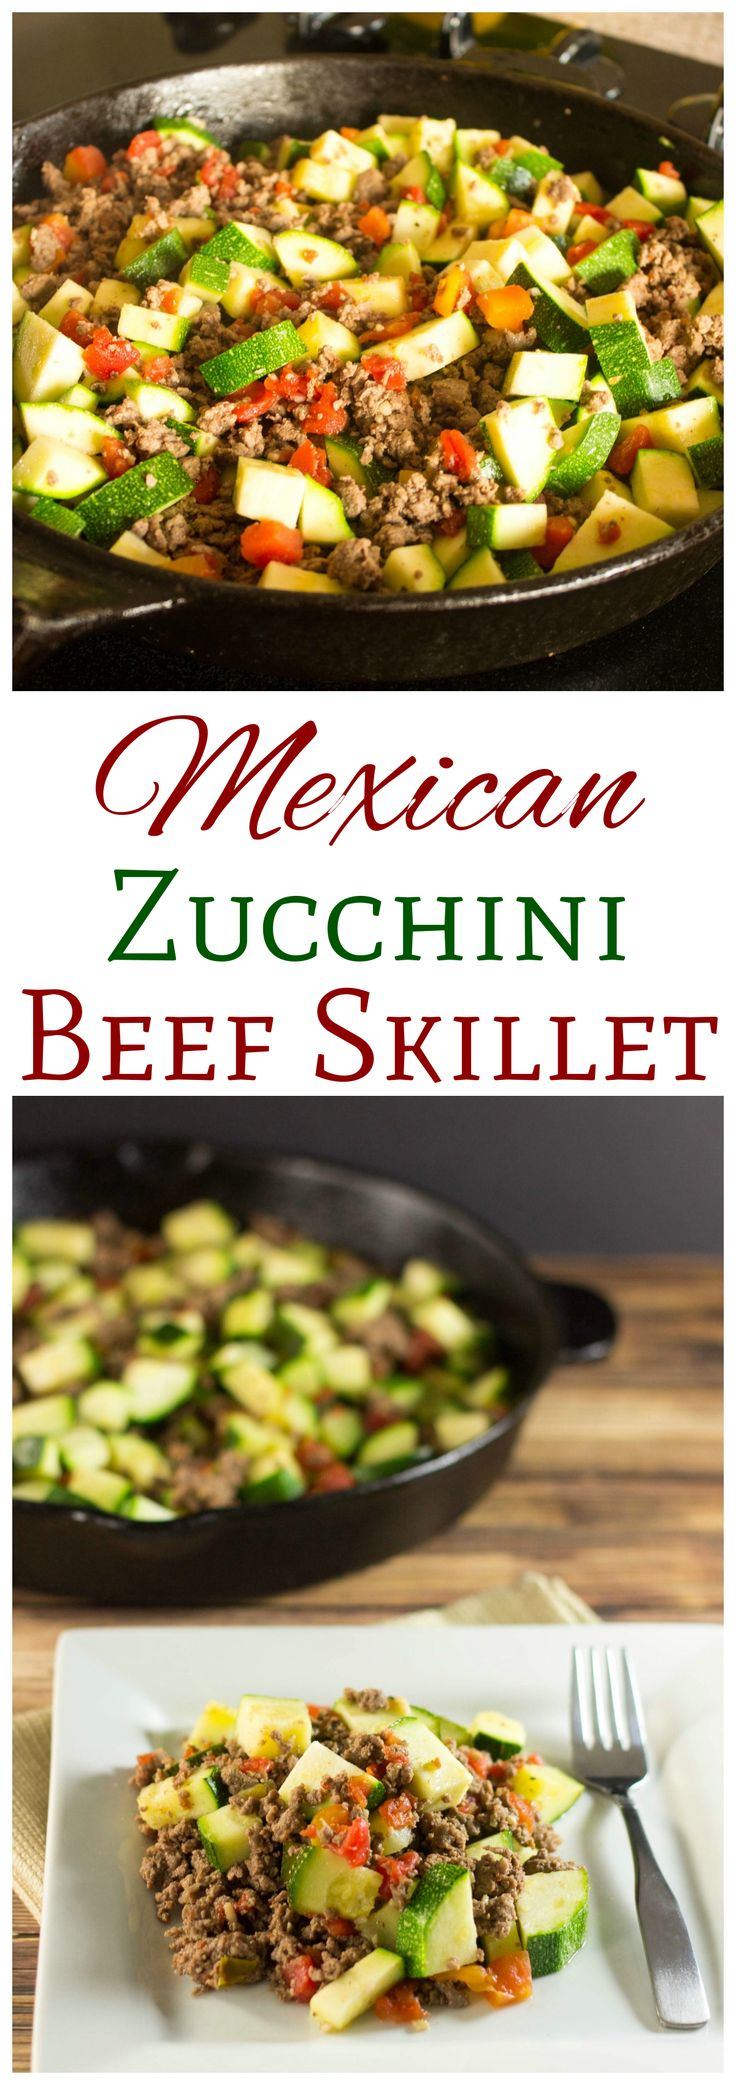 This low carb Mexican zucchini and ground beef recipe is a simple dish made with low cost ingredients. It's an easy dinner recipe perfect for summer.